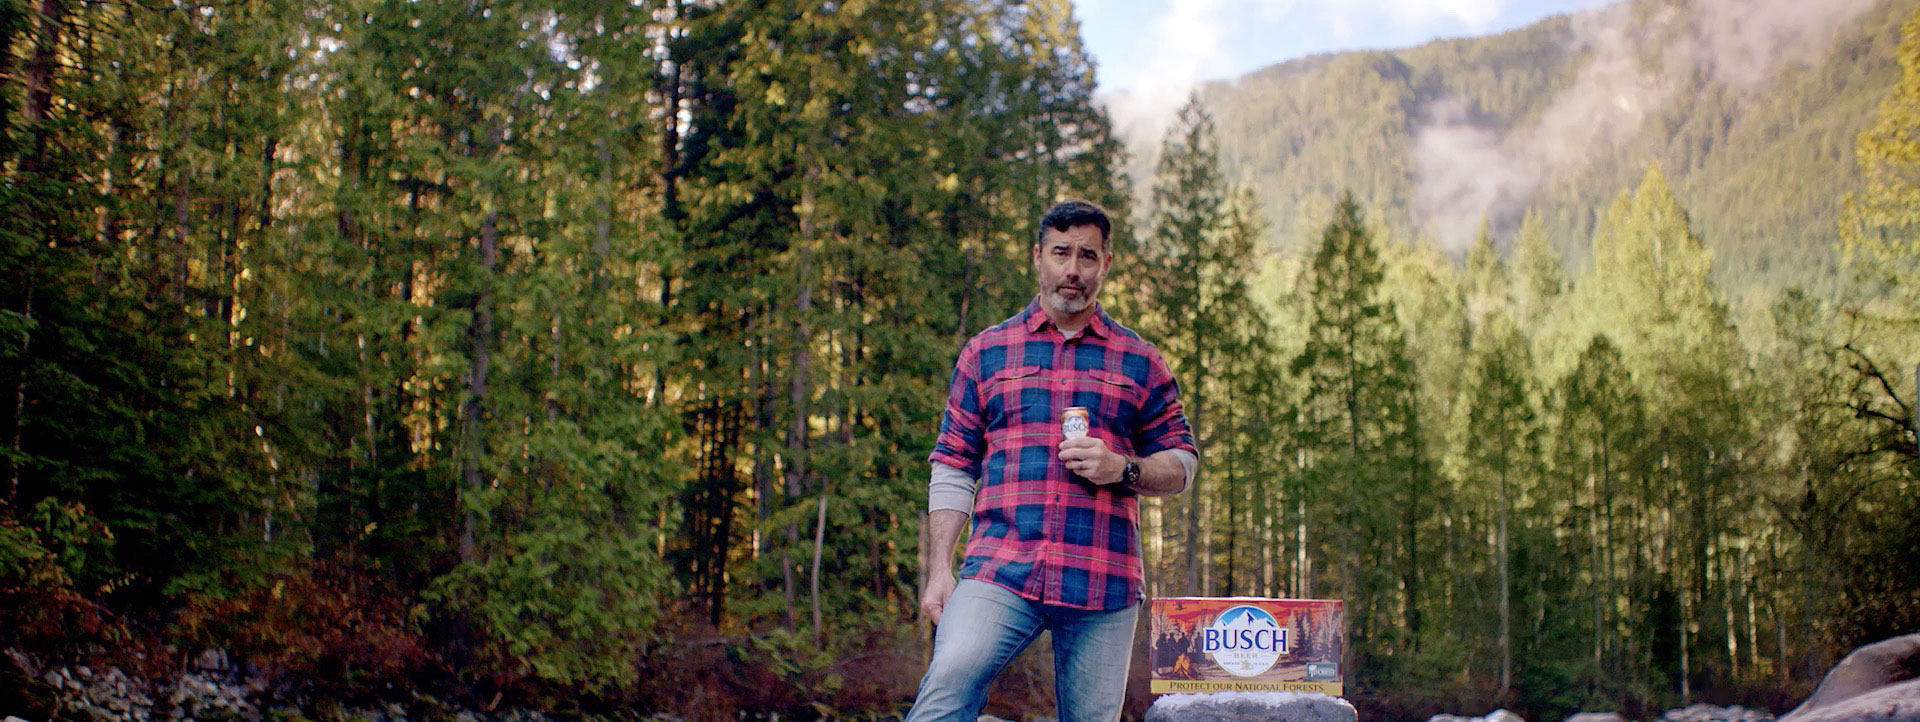 Busch Will Plant a Tree in Your Name for Not Skipping This